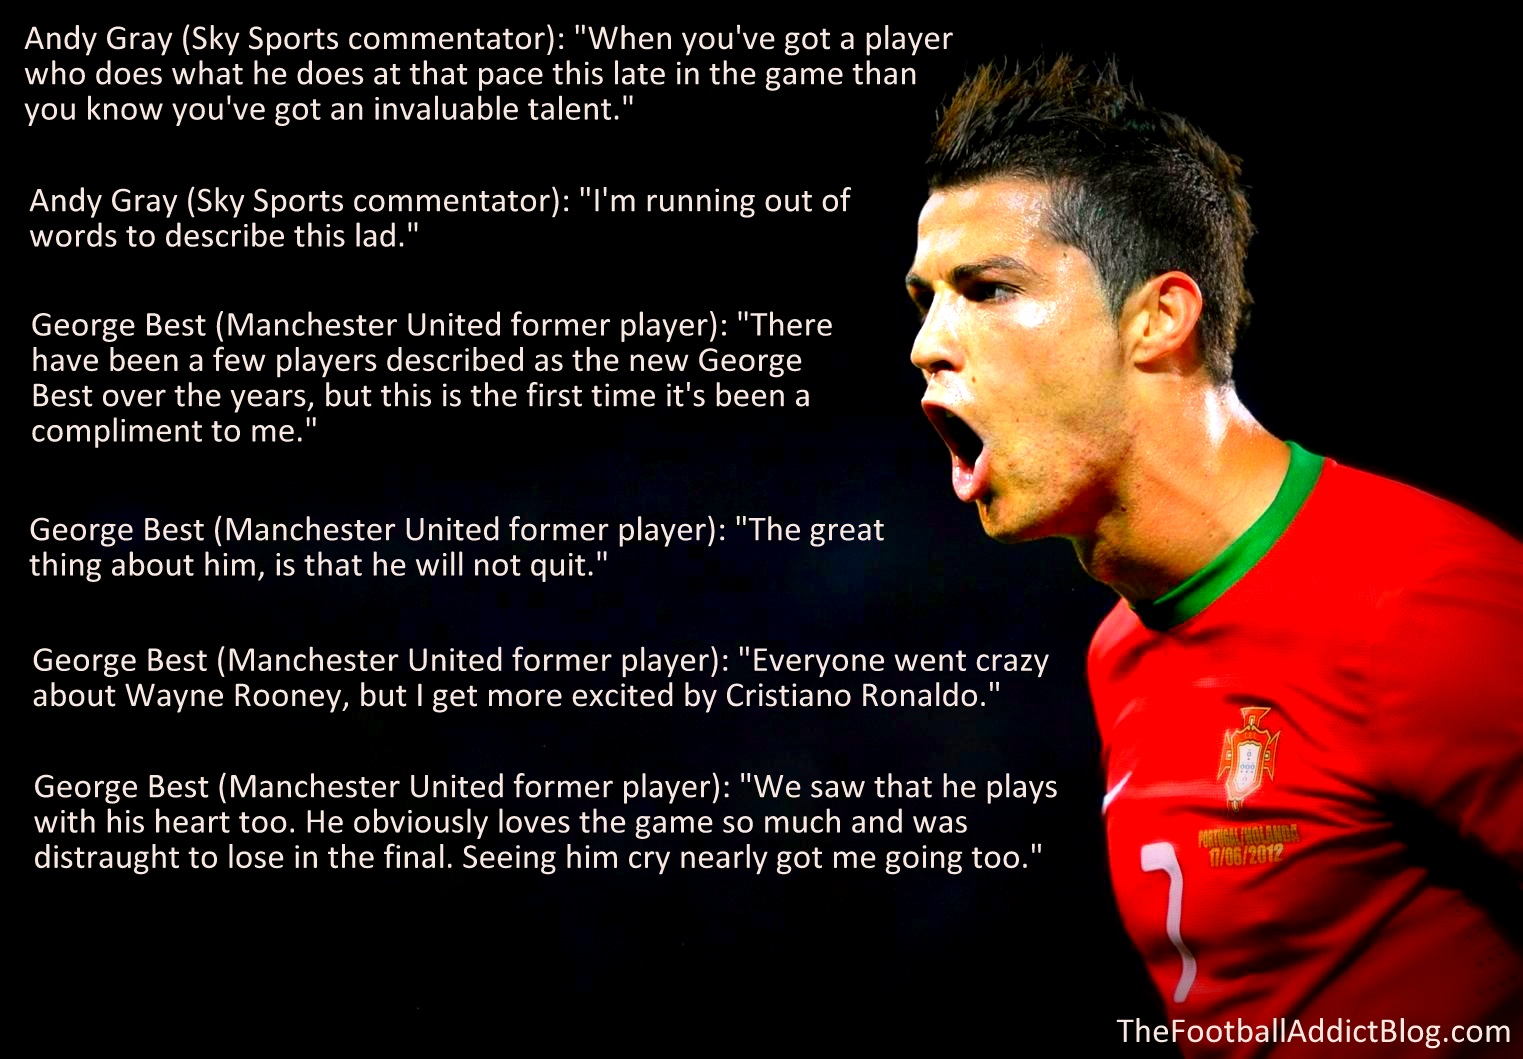 life of cristiano ronaldo Cristiano ronaldo is a portuguese footballer he currently plays for real madrid he is one of the modern day greats he has lived up to the name ronaldohe has won 3 ballon d'or during his career cristiano ronaldo is also one of the highest paid athletes in the world.